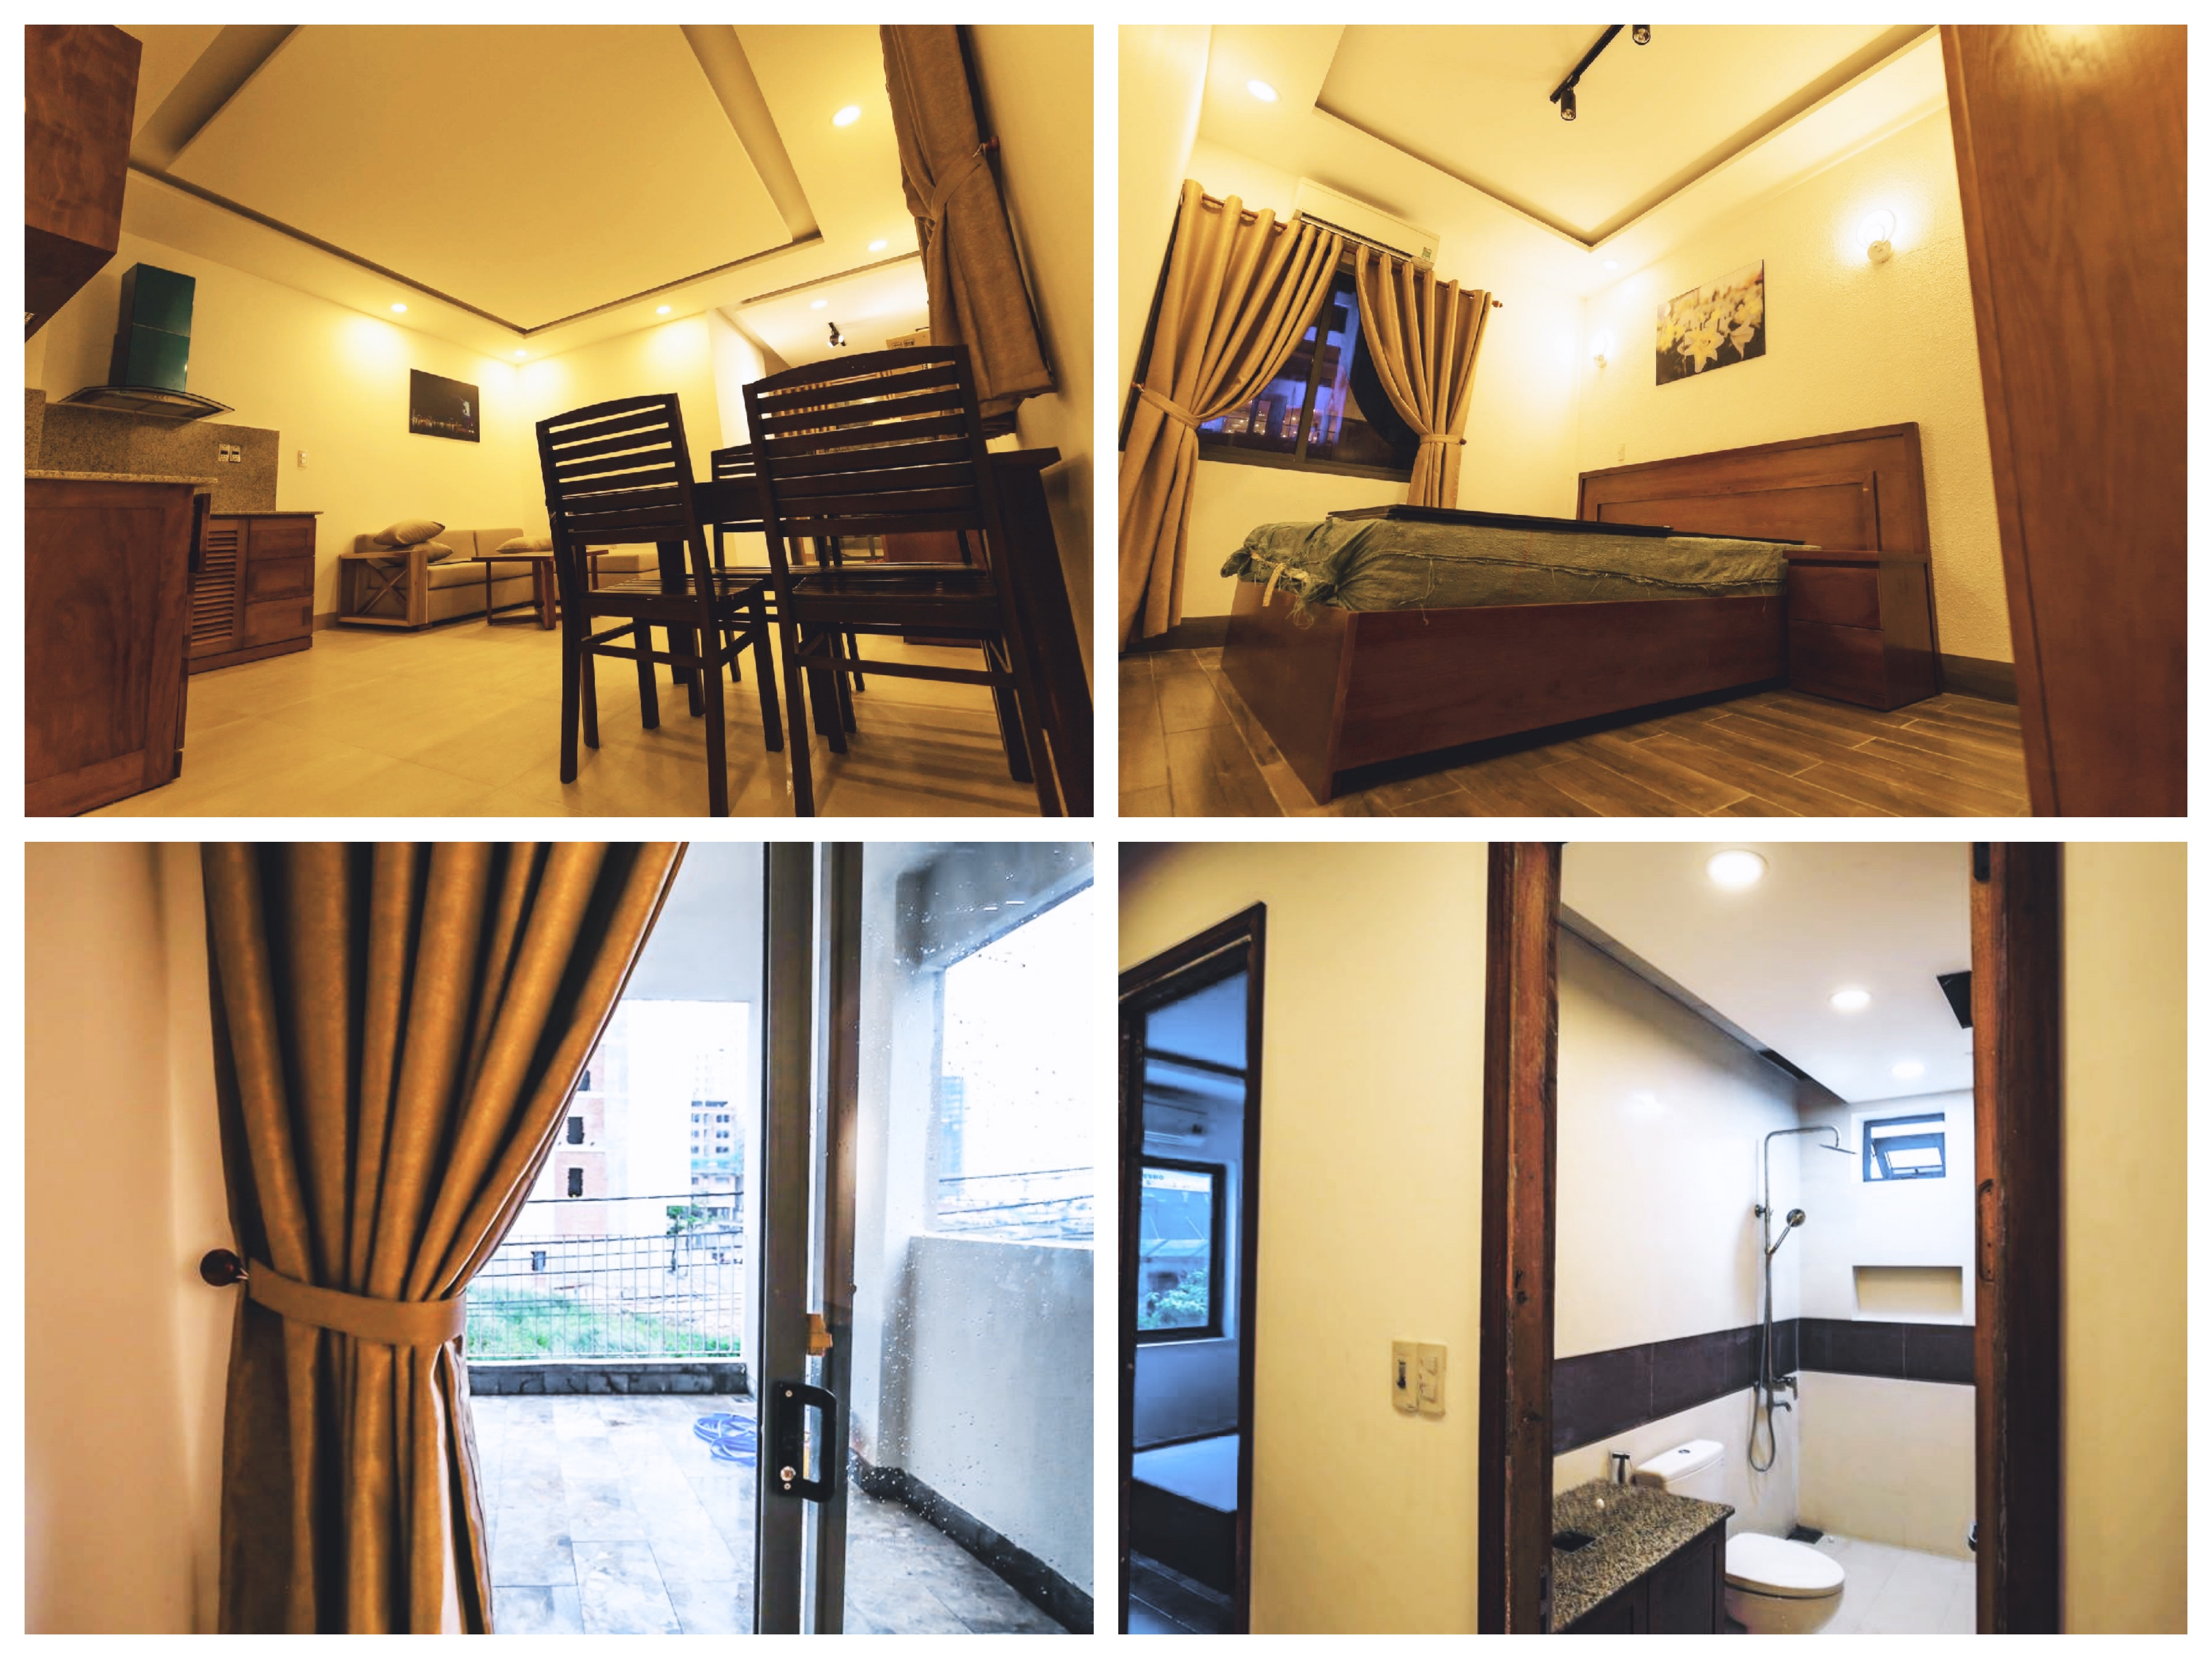 New one bedroom apartment with balcony in An Thượng area